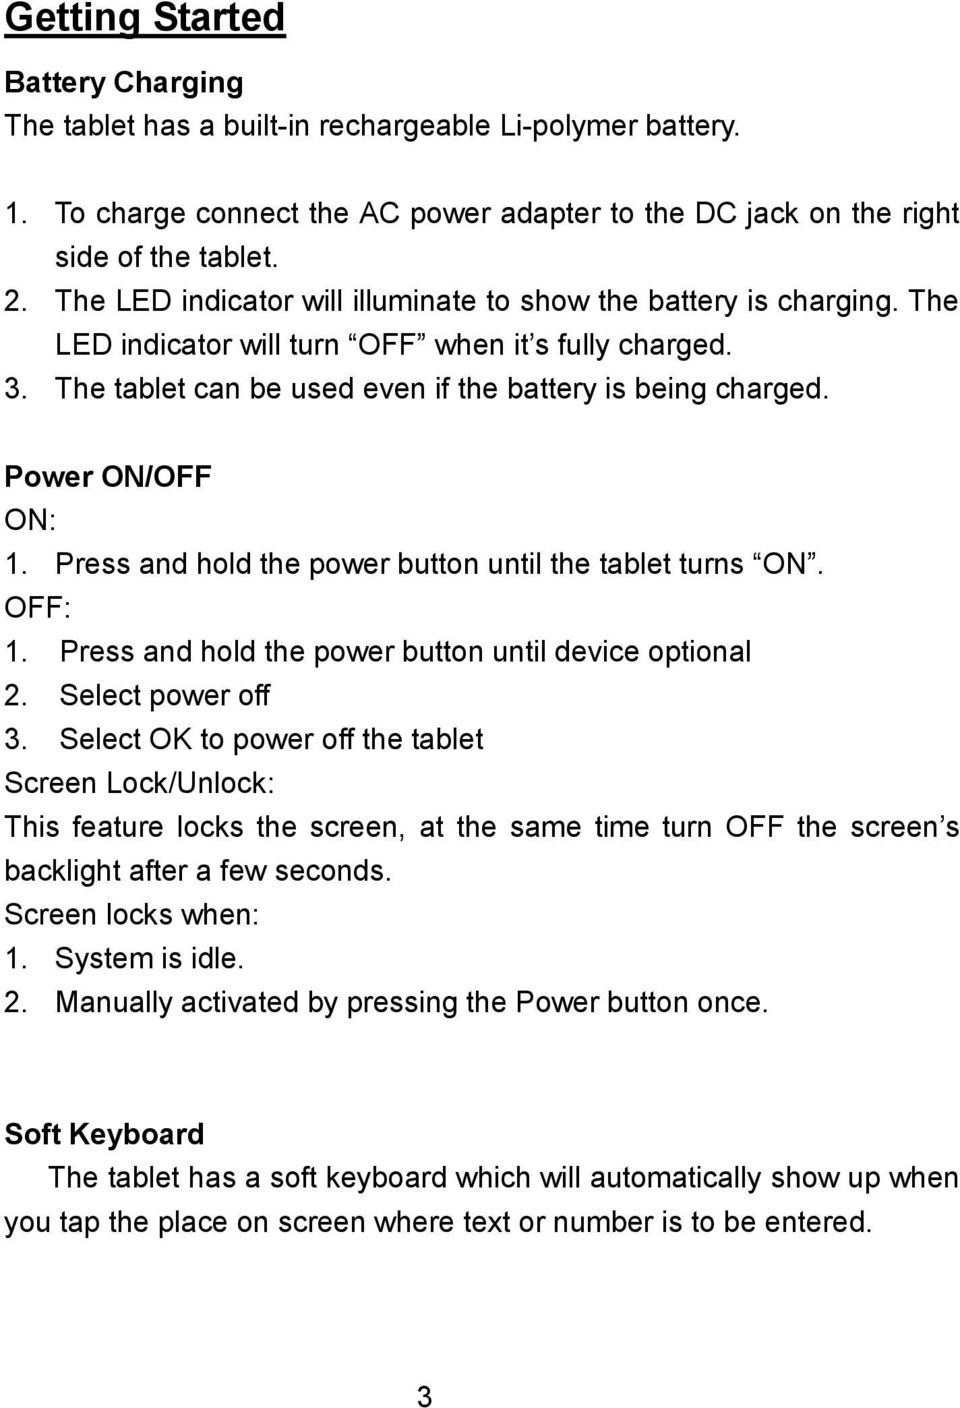 Power ON/OFF ON: 1. Press and hold the power button until the tablet turns ON. OFF: 1. Press and hold the power button until device optional. Select power off 3.